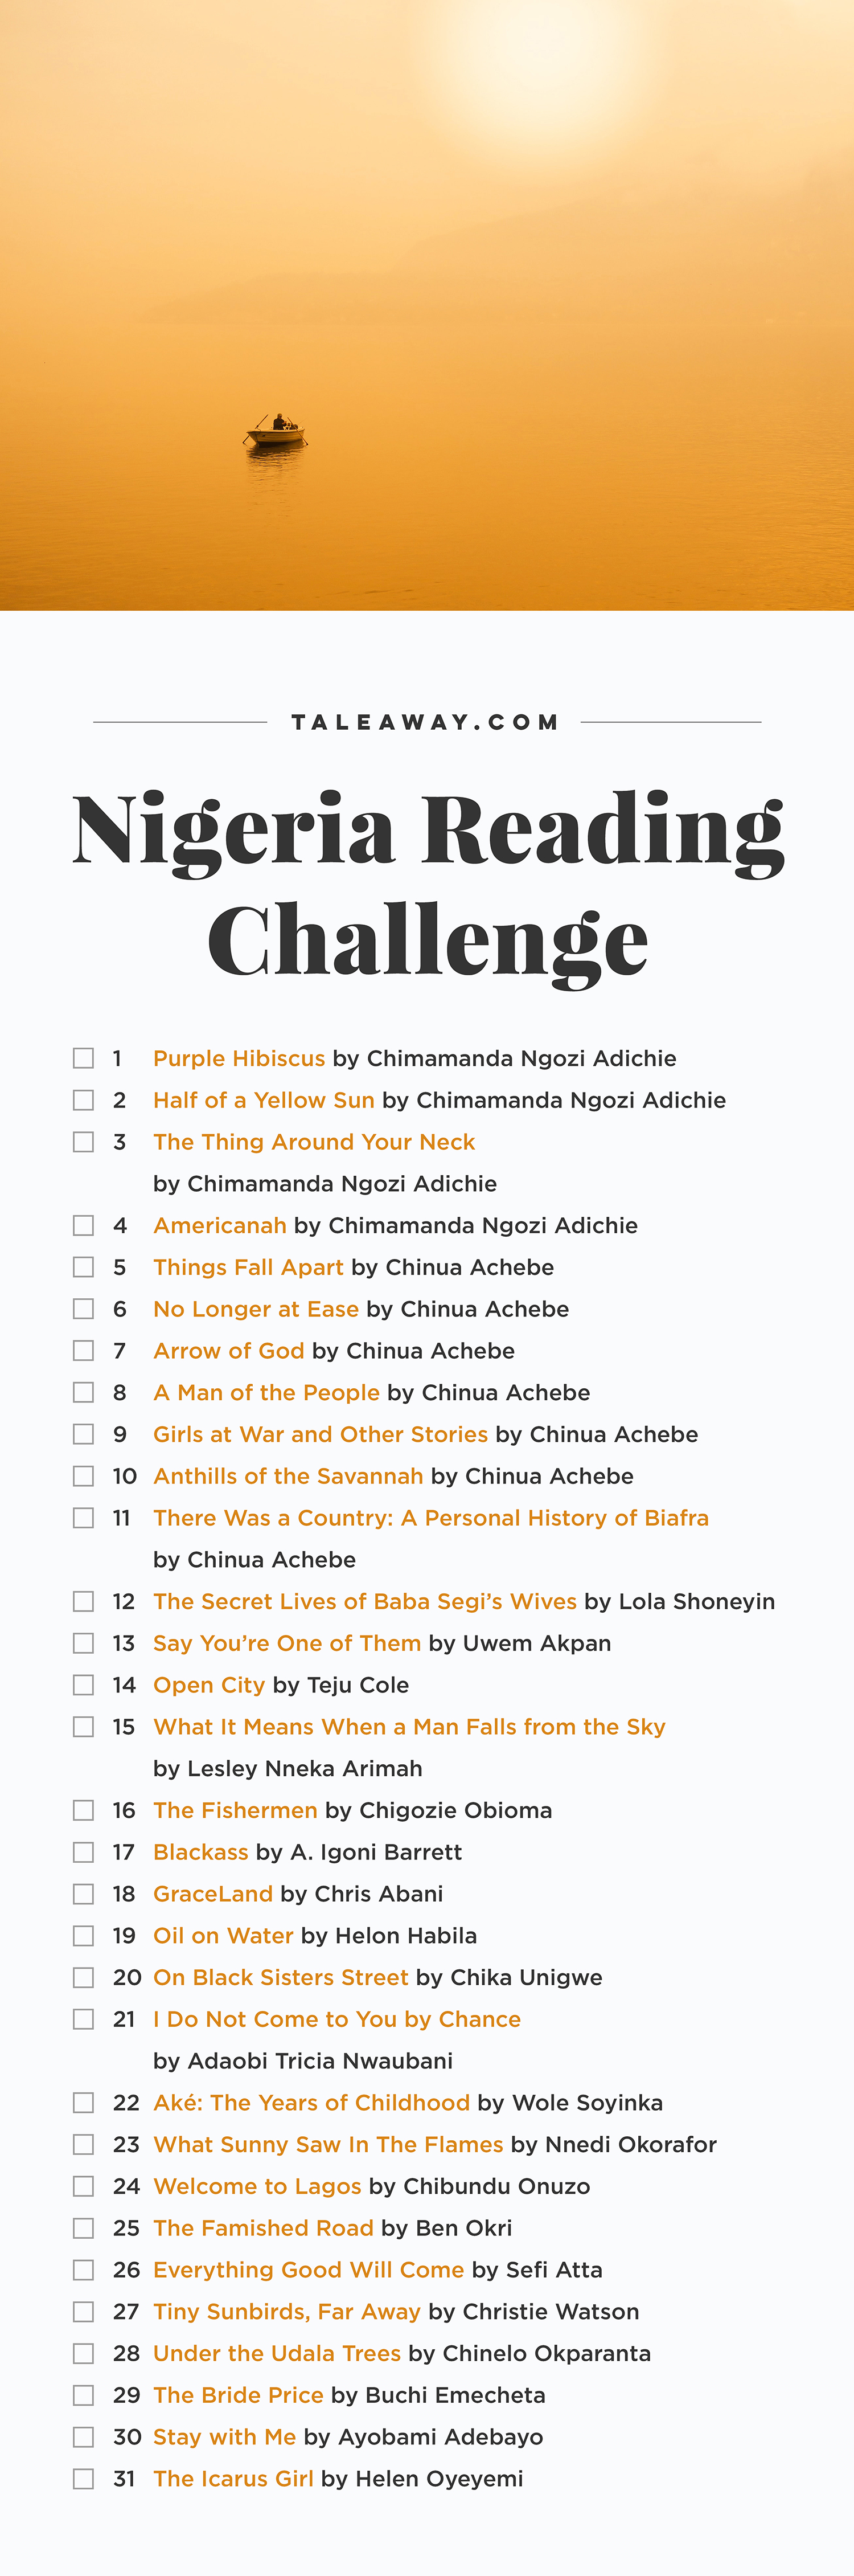 Nigeria Reading Challenge, Books Set In Nigeria - For more books visit www.taleway.com to find books set around the world. Ideas for those who like to travel, both in life and in fiction. reading challenge, nigeria reading challenge, book challenge, books you must read, books from around the world, world books, books and travel, travel reading list, reading list, books around the world, books to read, nigeria books, nigeria books novels, nigeria travel